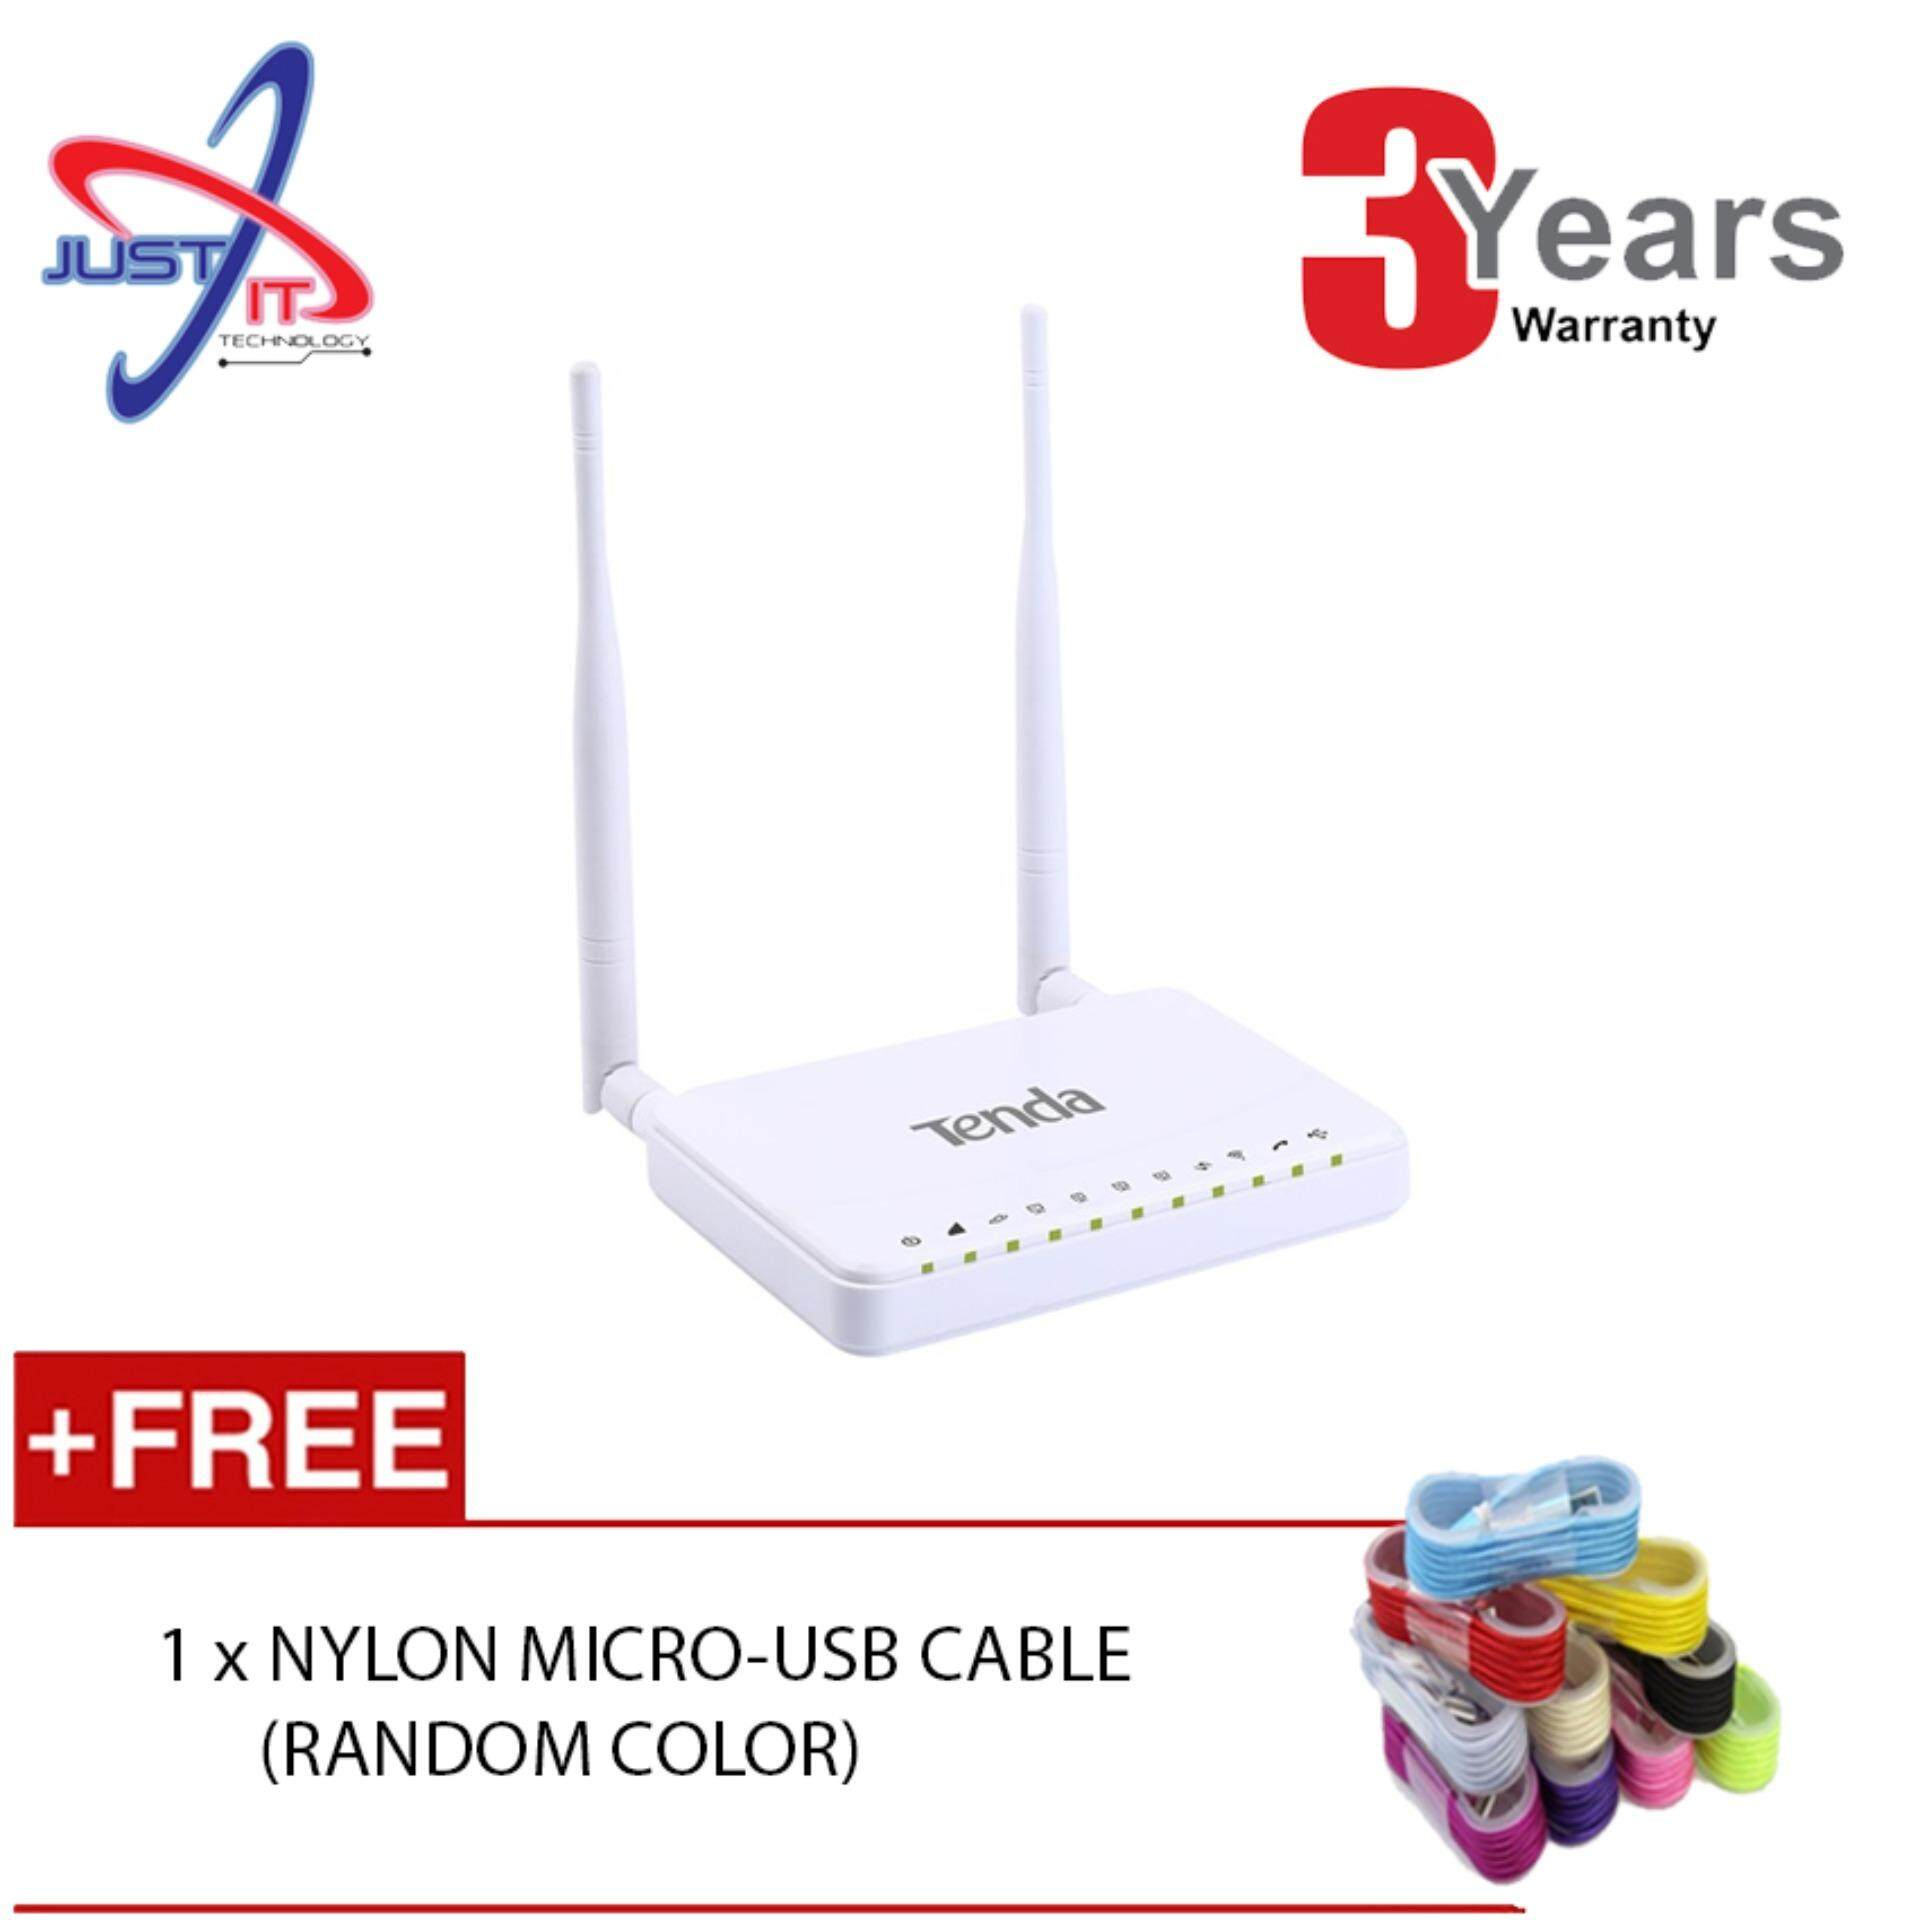 Tenda Routers Price In Malaysia Best Lazada N301 Wireless Router 3 1 4g680 N300 4g Lte And Volte